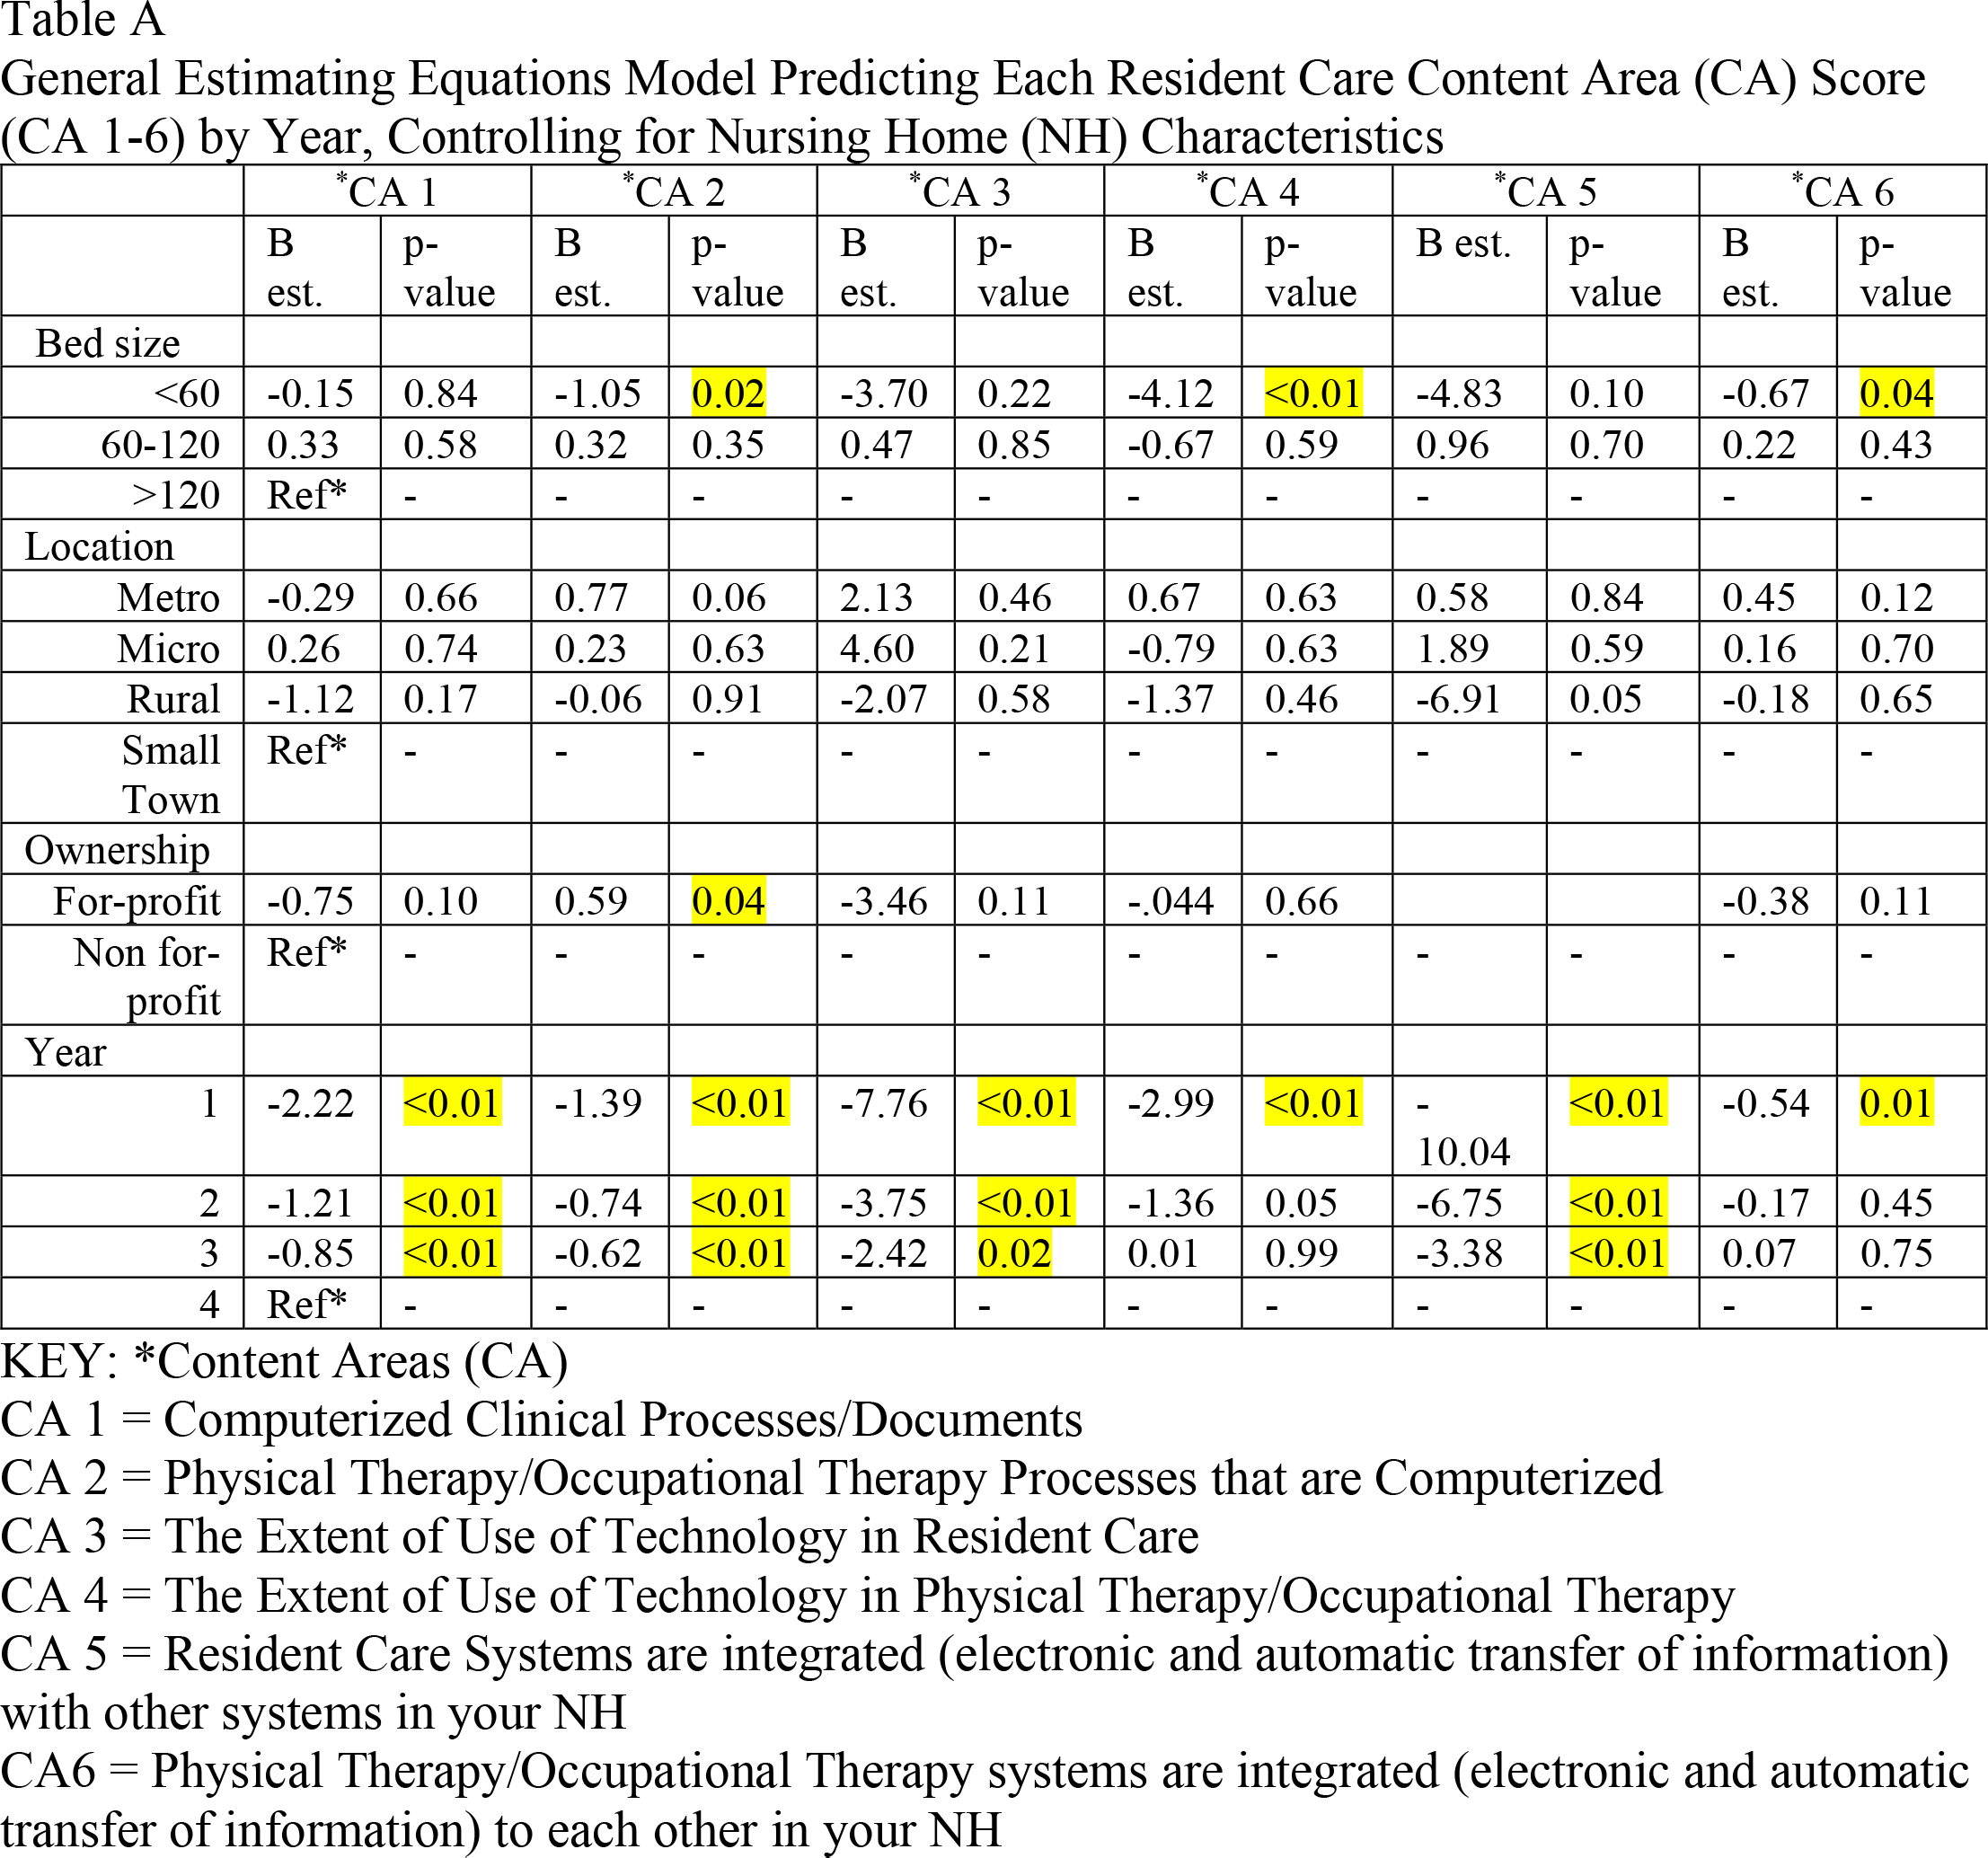 General Estimating Equations Model Predicting Each Resident Care Content Area (CA) Score (CA 1–6) by Year, Controlling for Nursing Home (NH) Characteristics